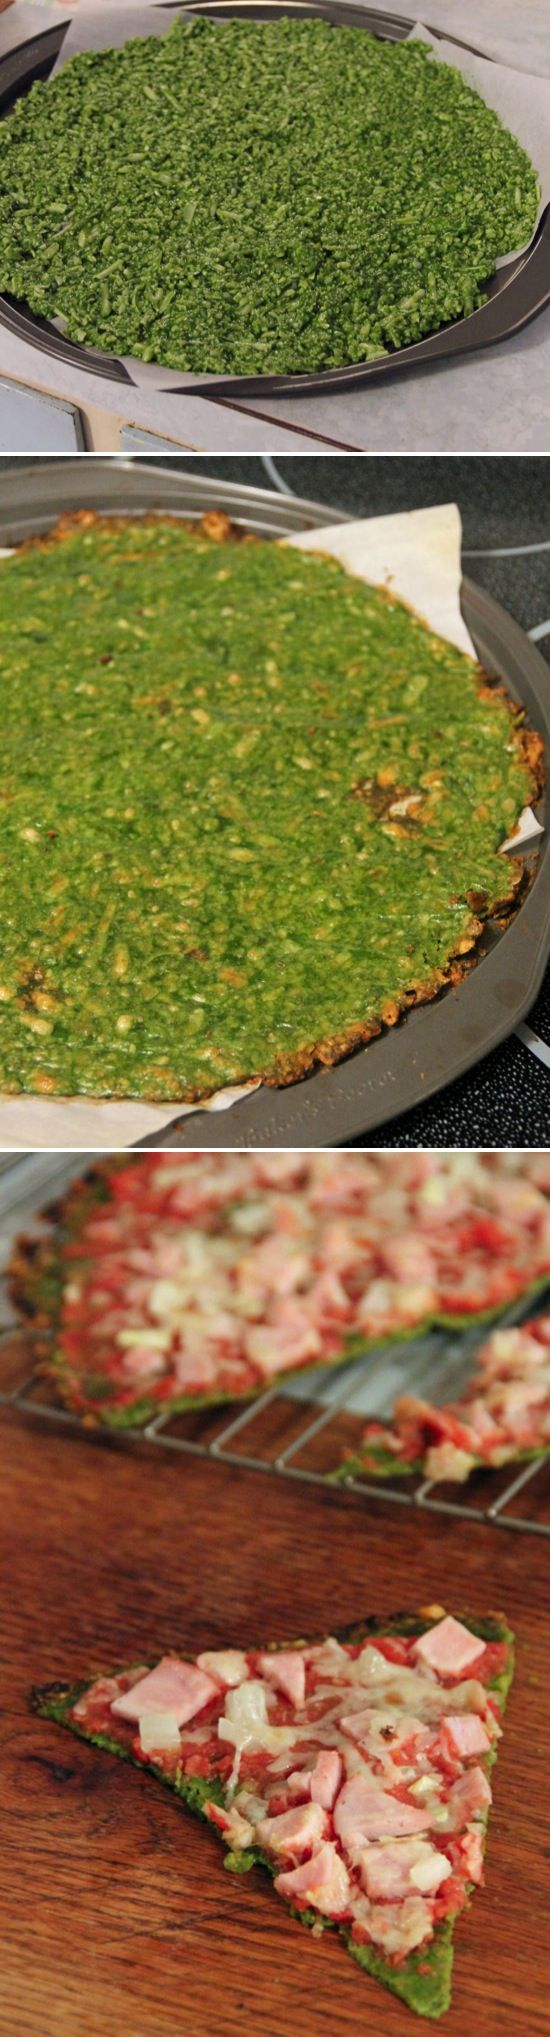 Spinach Crust Pizza! Gluten free, low carb, yummy.